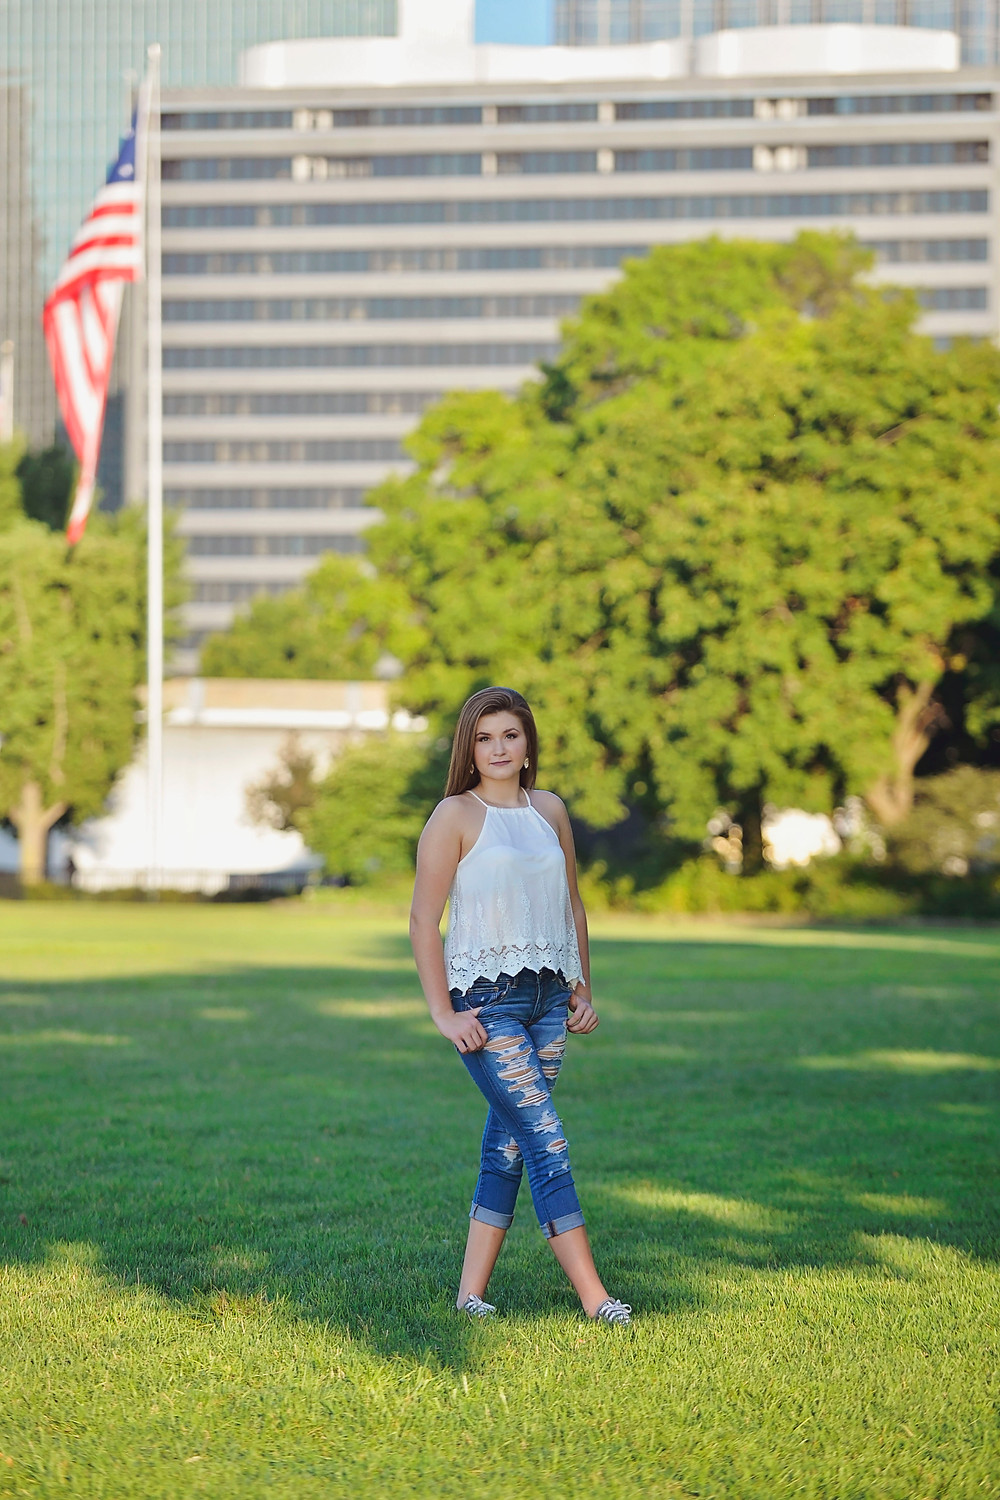 pittsburgh senior portraits, pittsburgh senior photographer